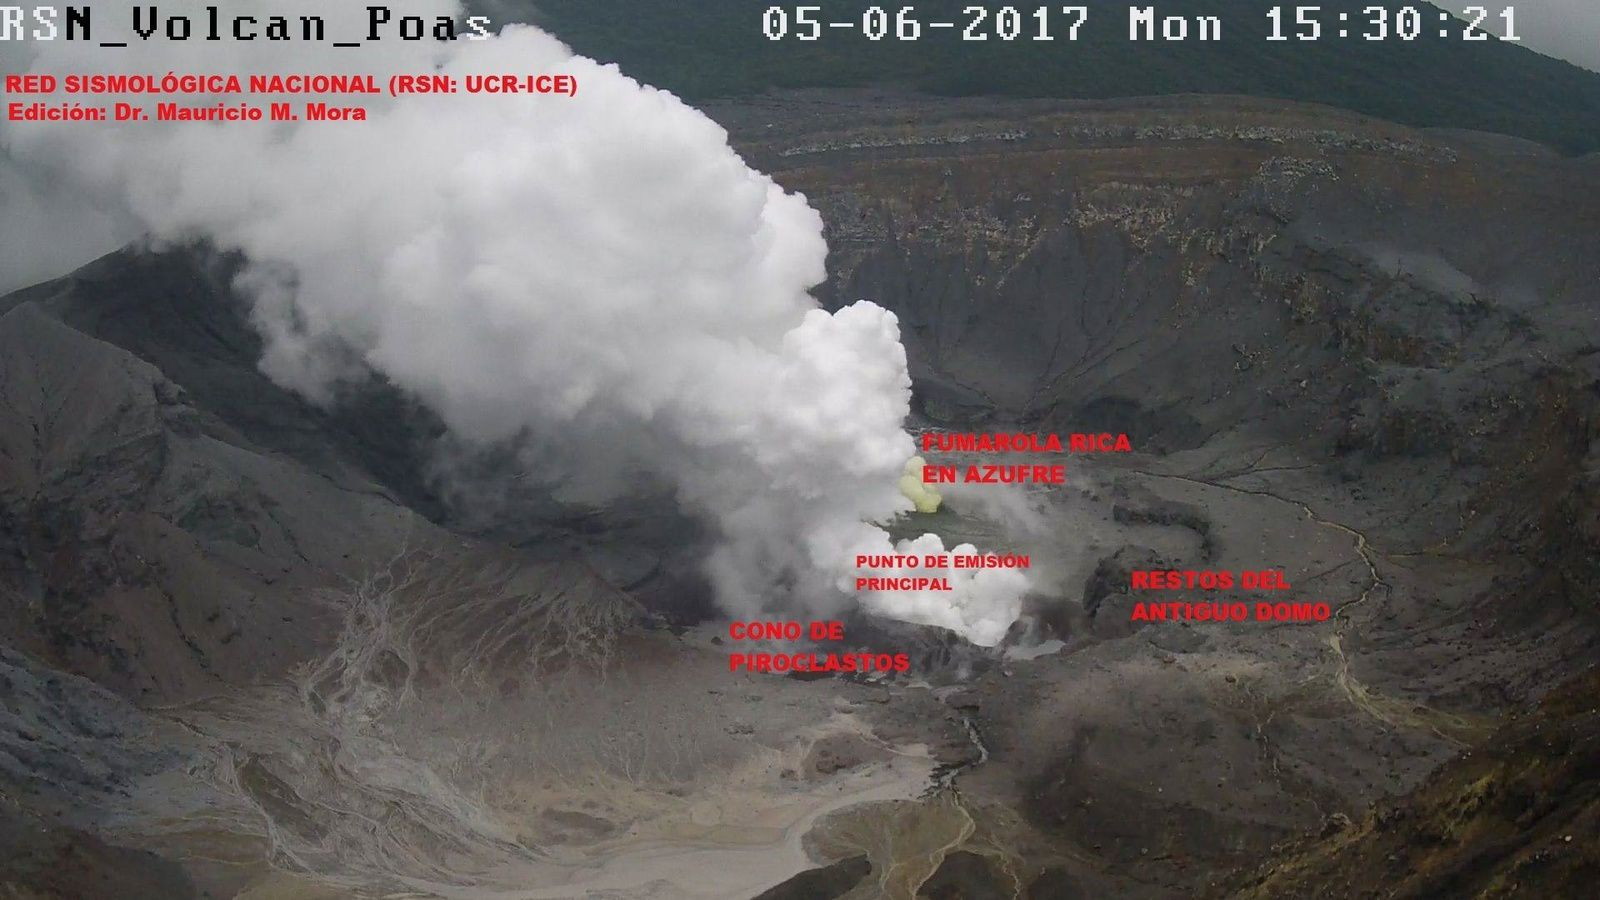 Poas - activité du 05.06.2017 / 15h30 - note the pyroclastic new cone and the small fumarole rich in sulfur -  photo Dr. M.M.Mora / RSN